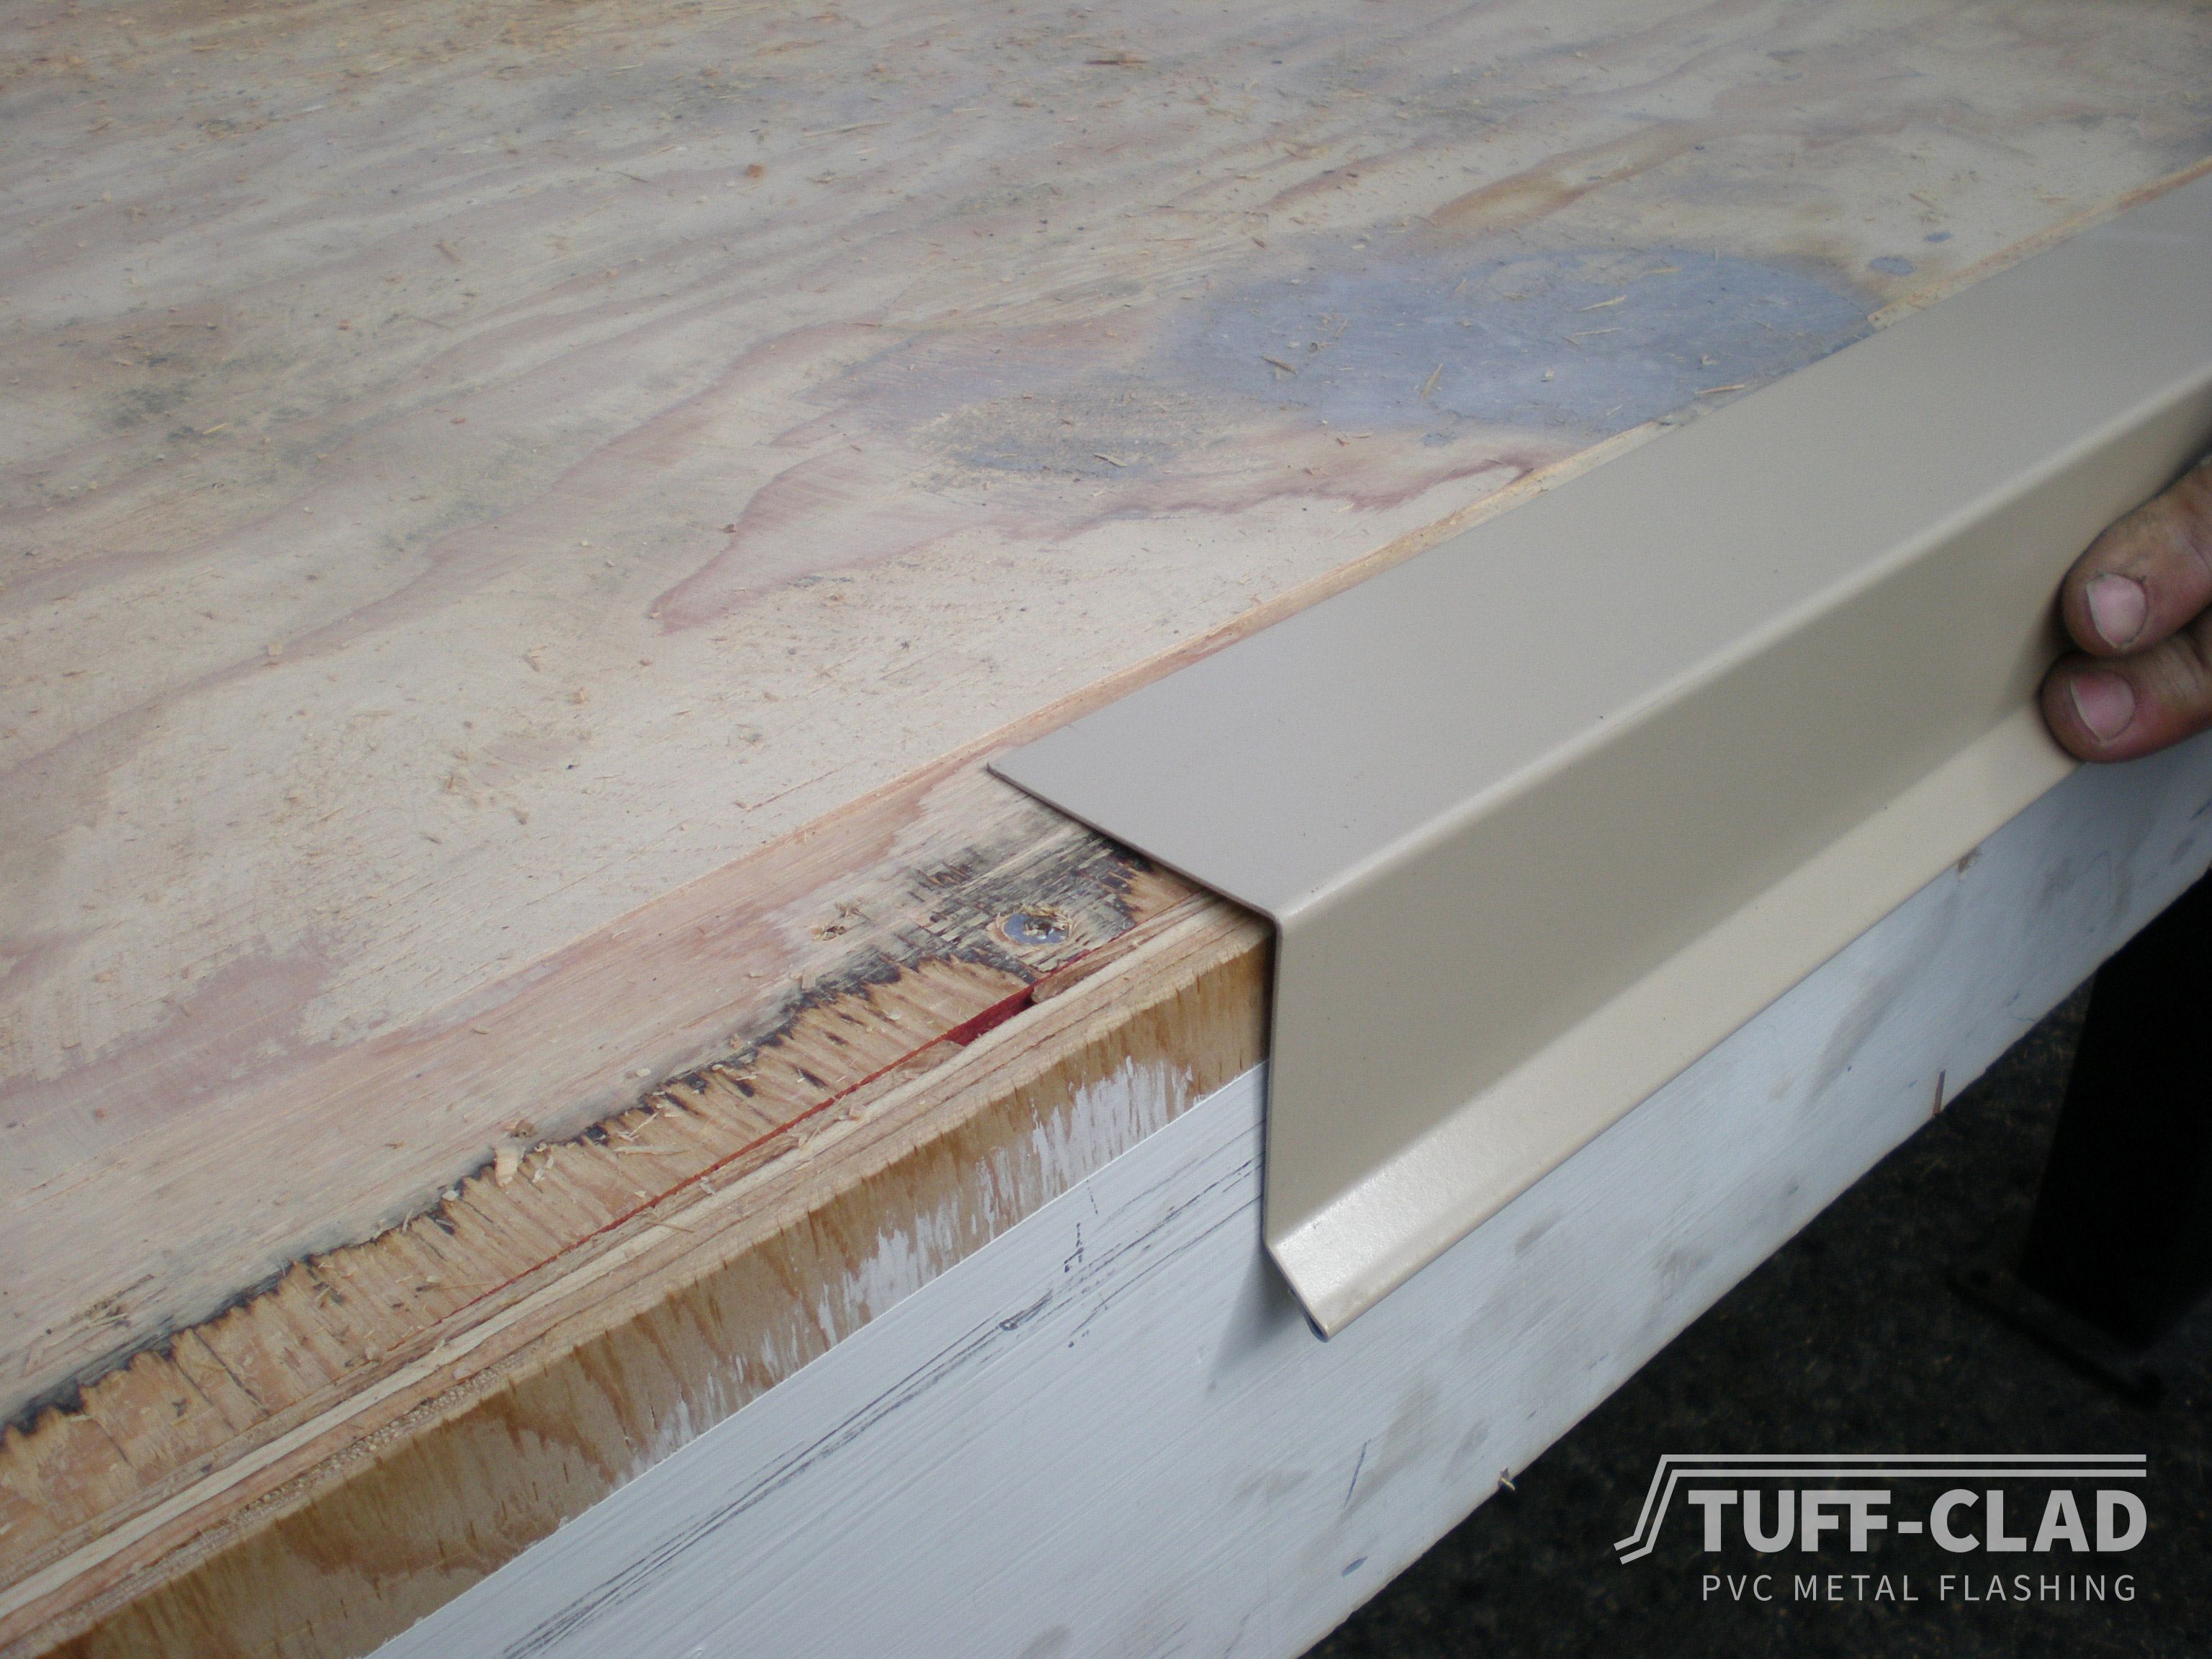 Tuff Clad Pvc Metal Flashing For Vinyl Decking By Tufdek